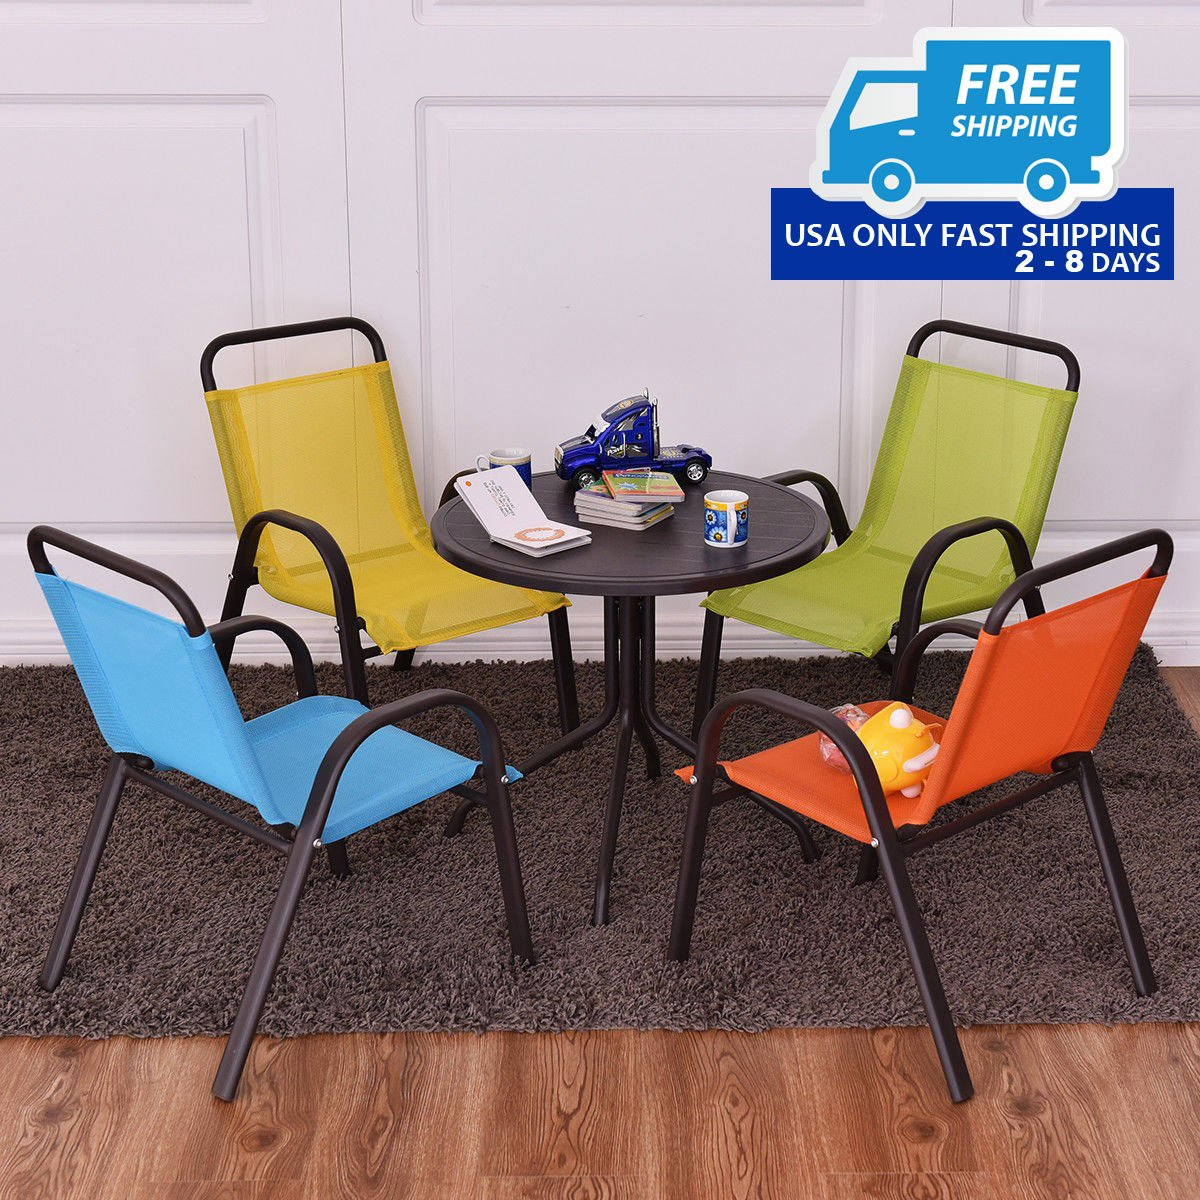 Kids Outdoor Table And Chairs Patio Indoor 5 Pcs Kids Dining Table And Chairs Play Set